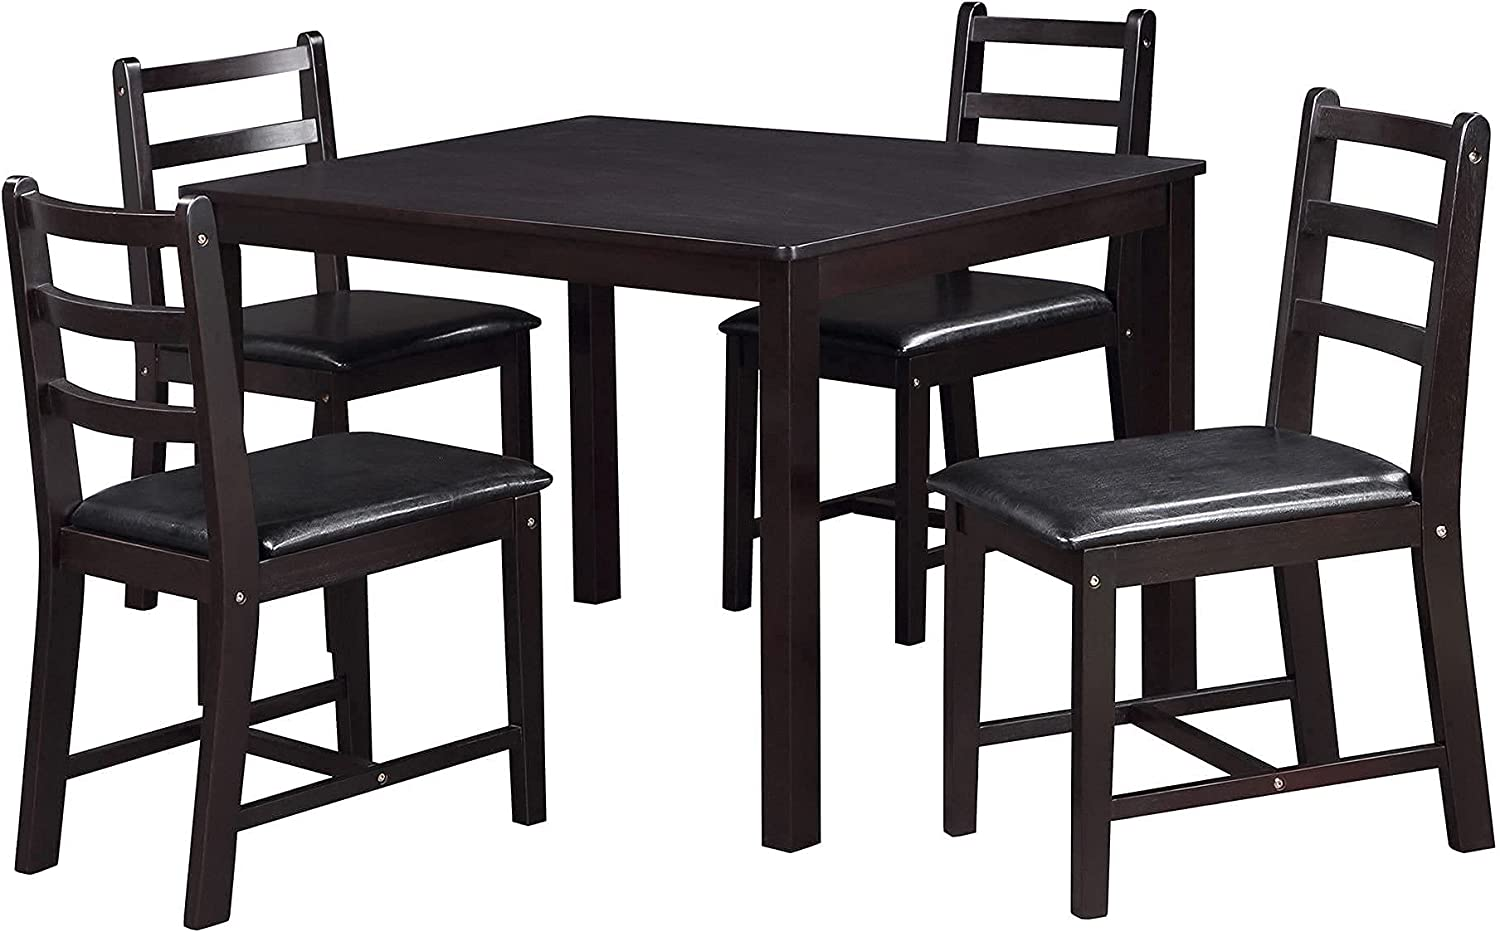 Max 71% OFF Savonnerie Dining Manufacturer OFFicial shop Table Set with 4 Black Chairs Seats Leather PU